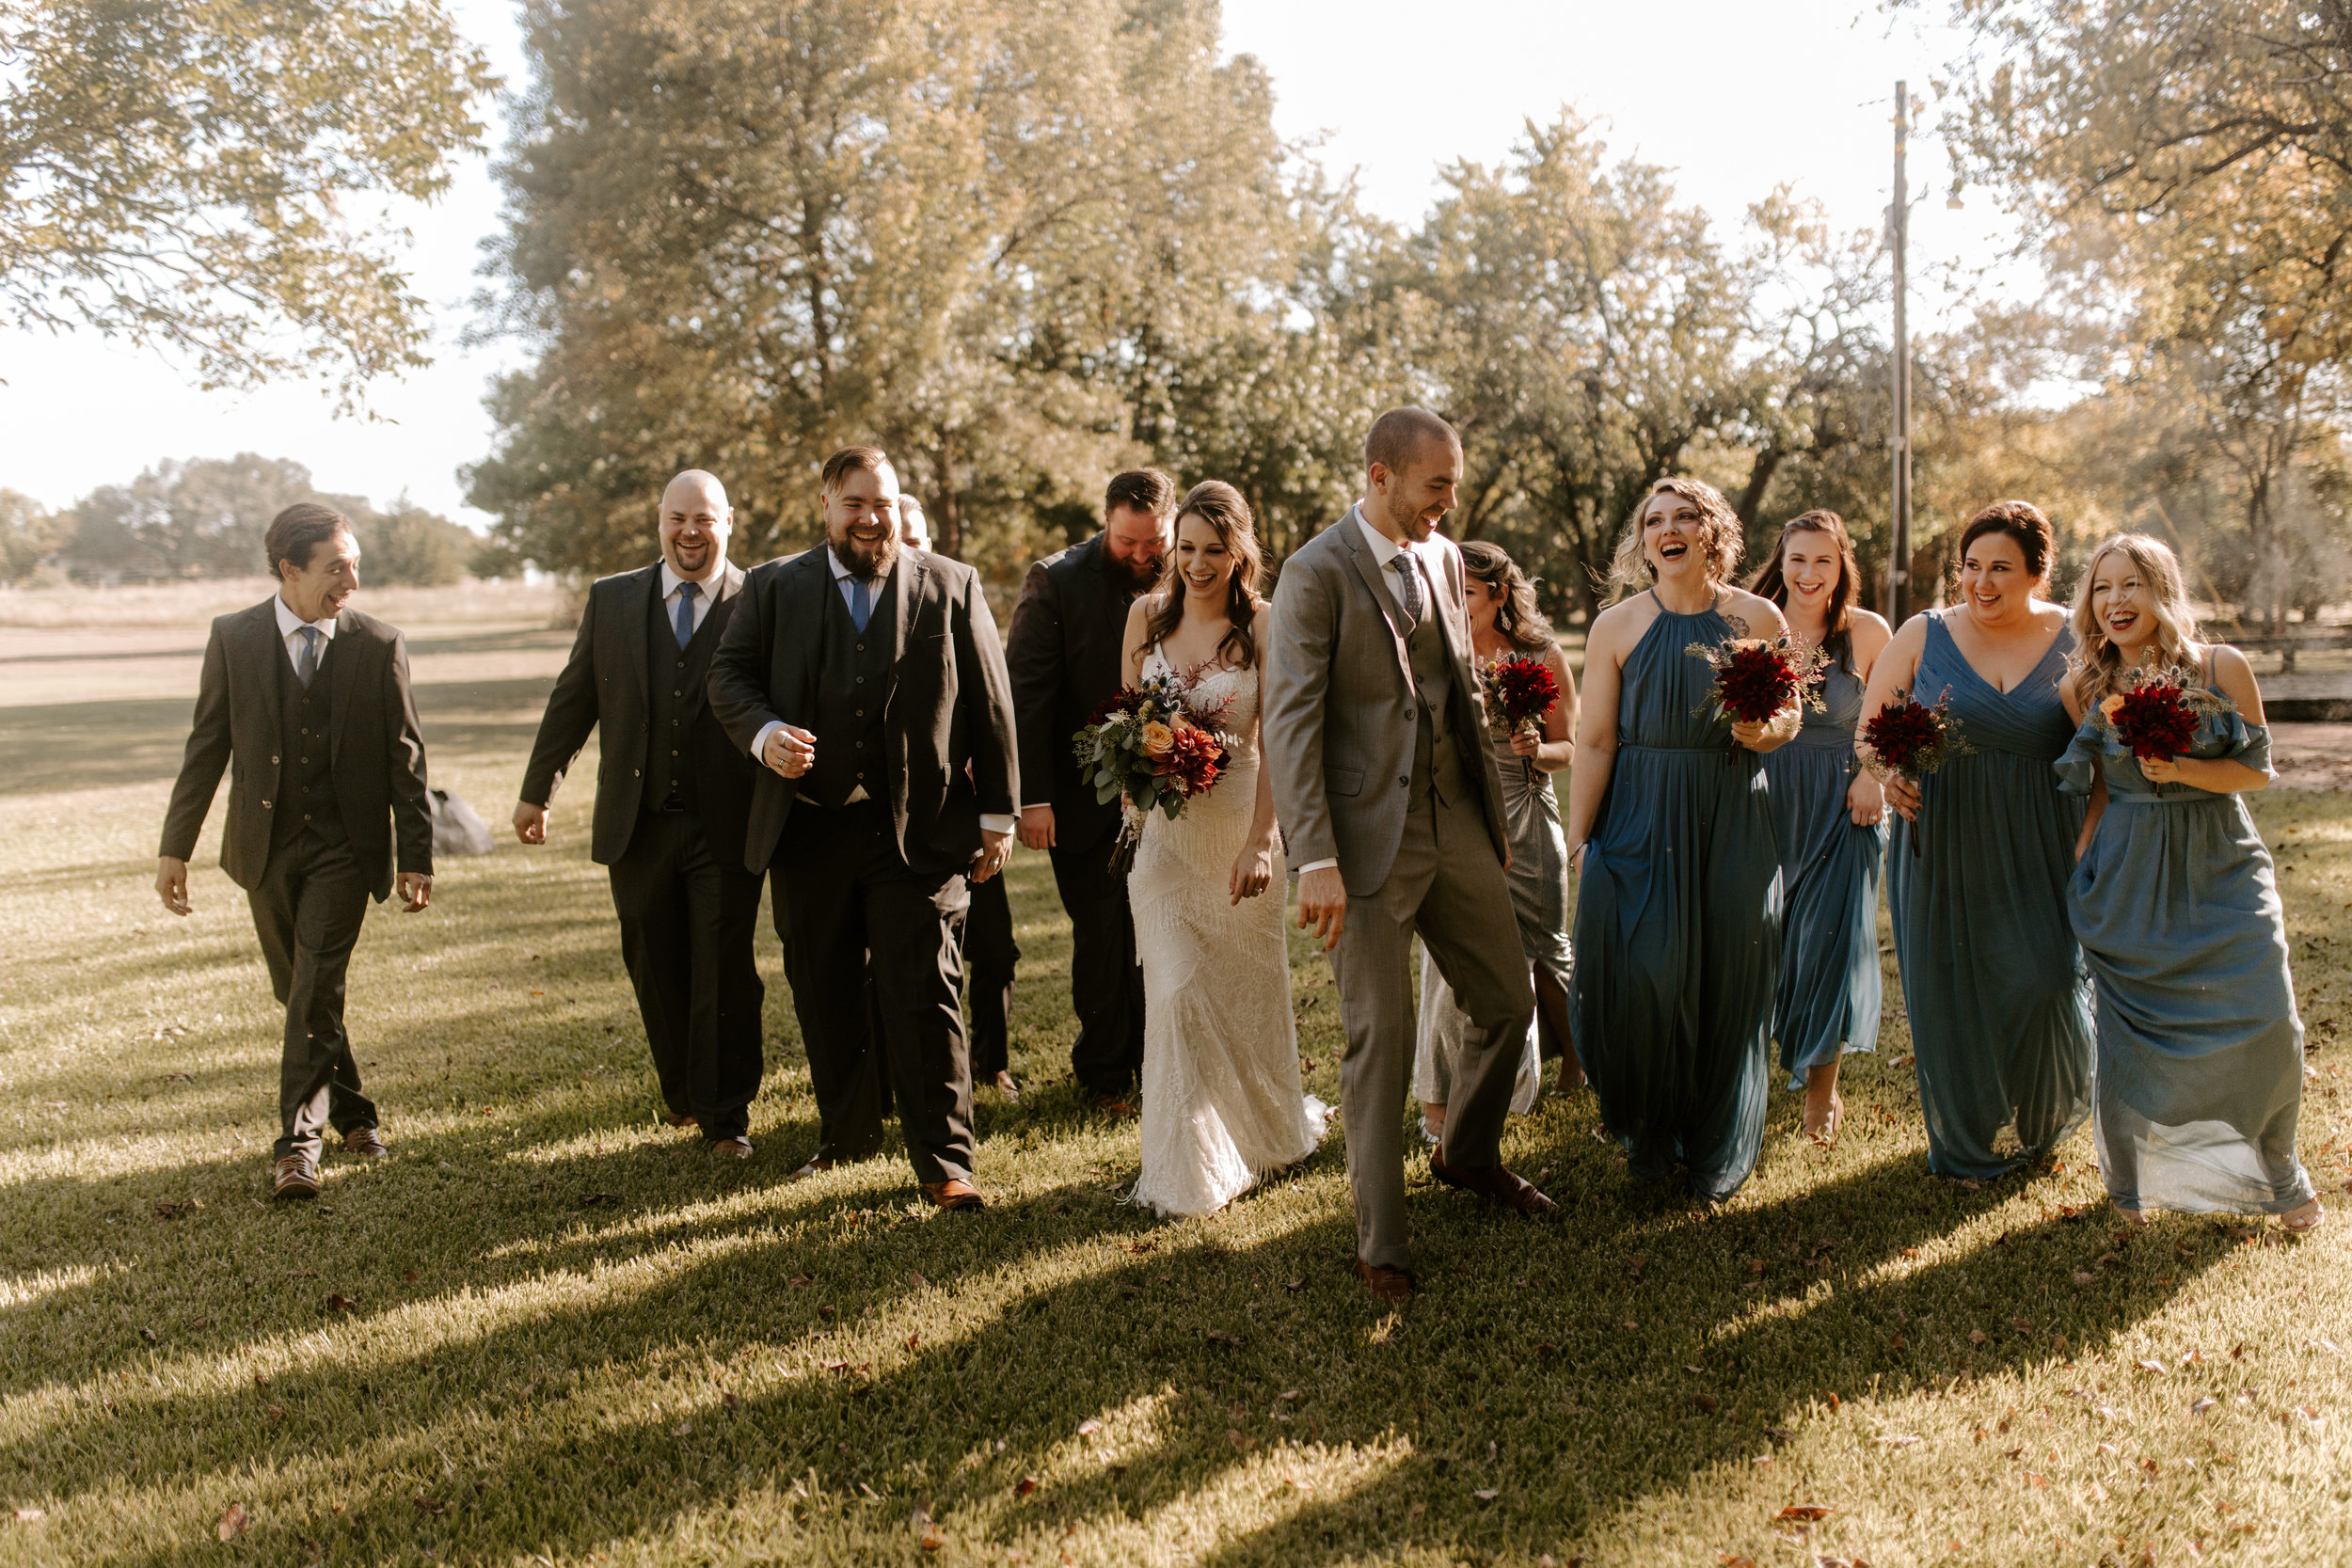 Worley Wedding - Arden and Eric - Wedding Photos - Sneak Peek -Meme Urbane Photography_-2.jpg